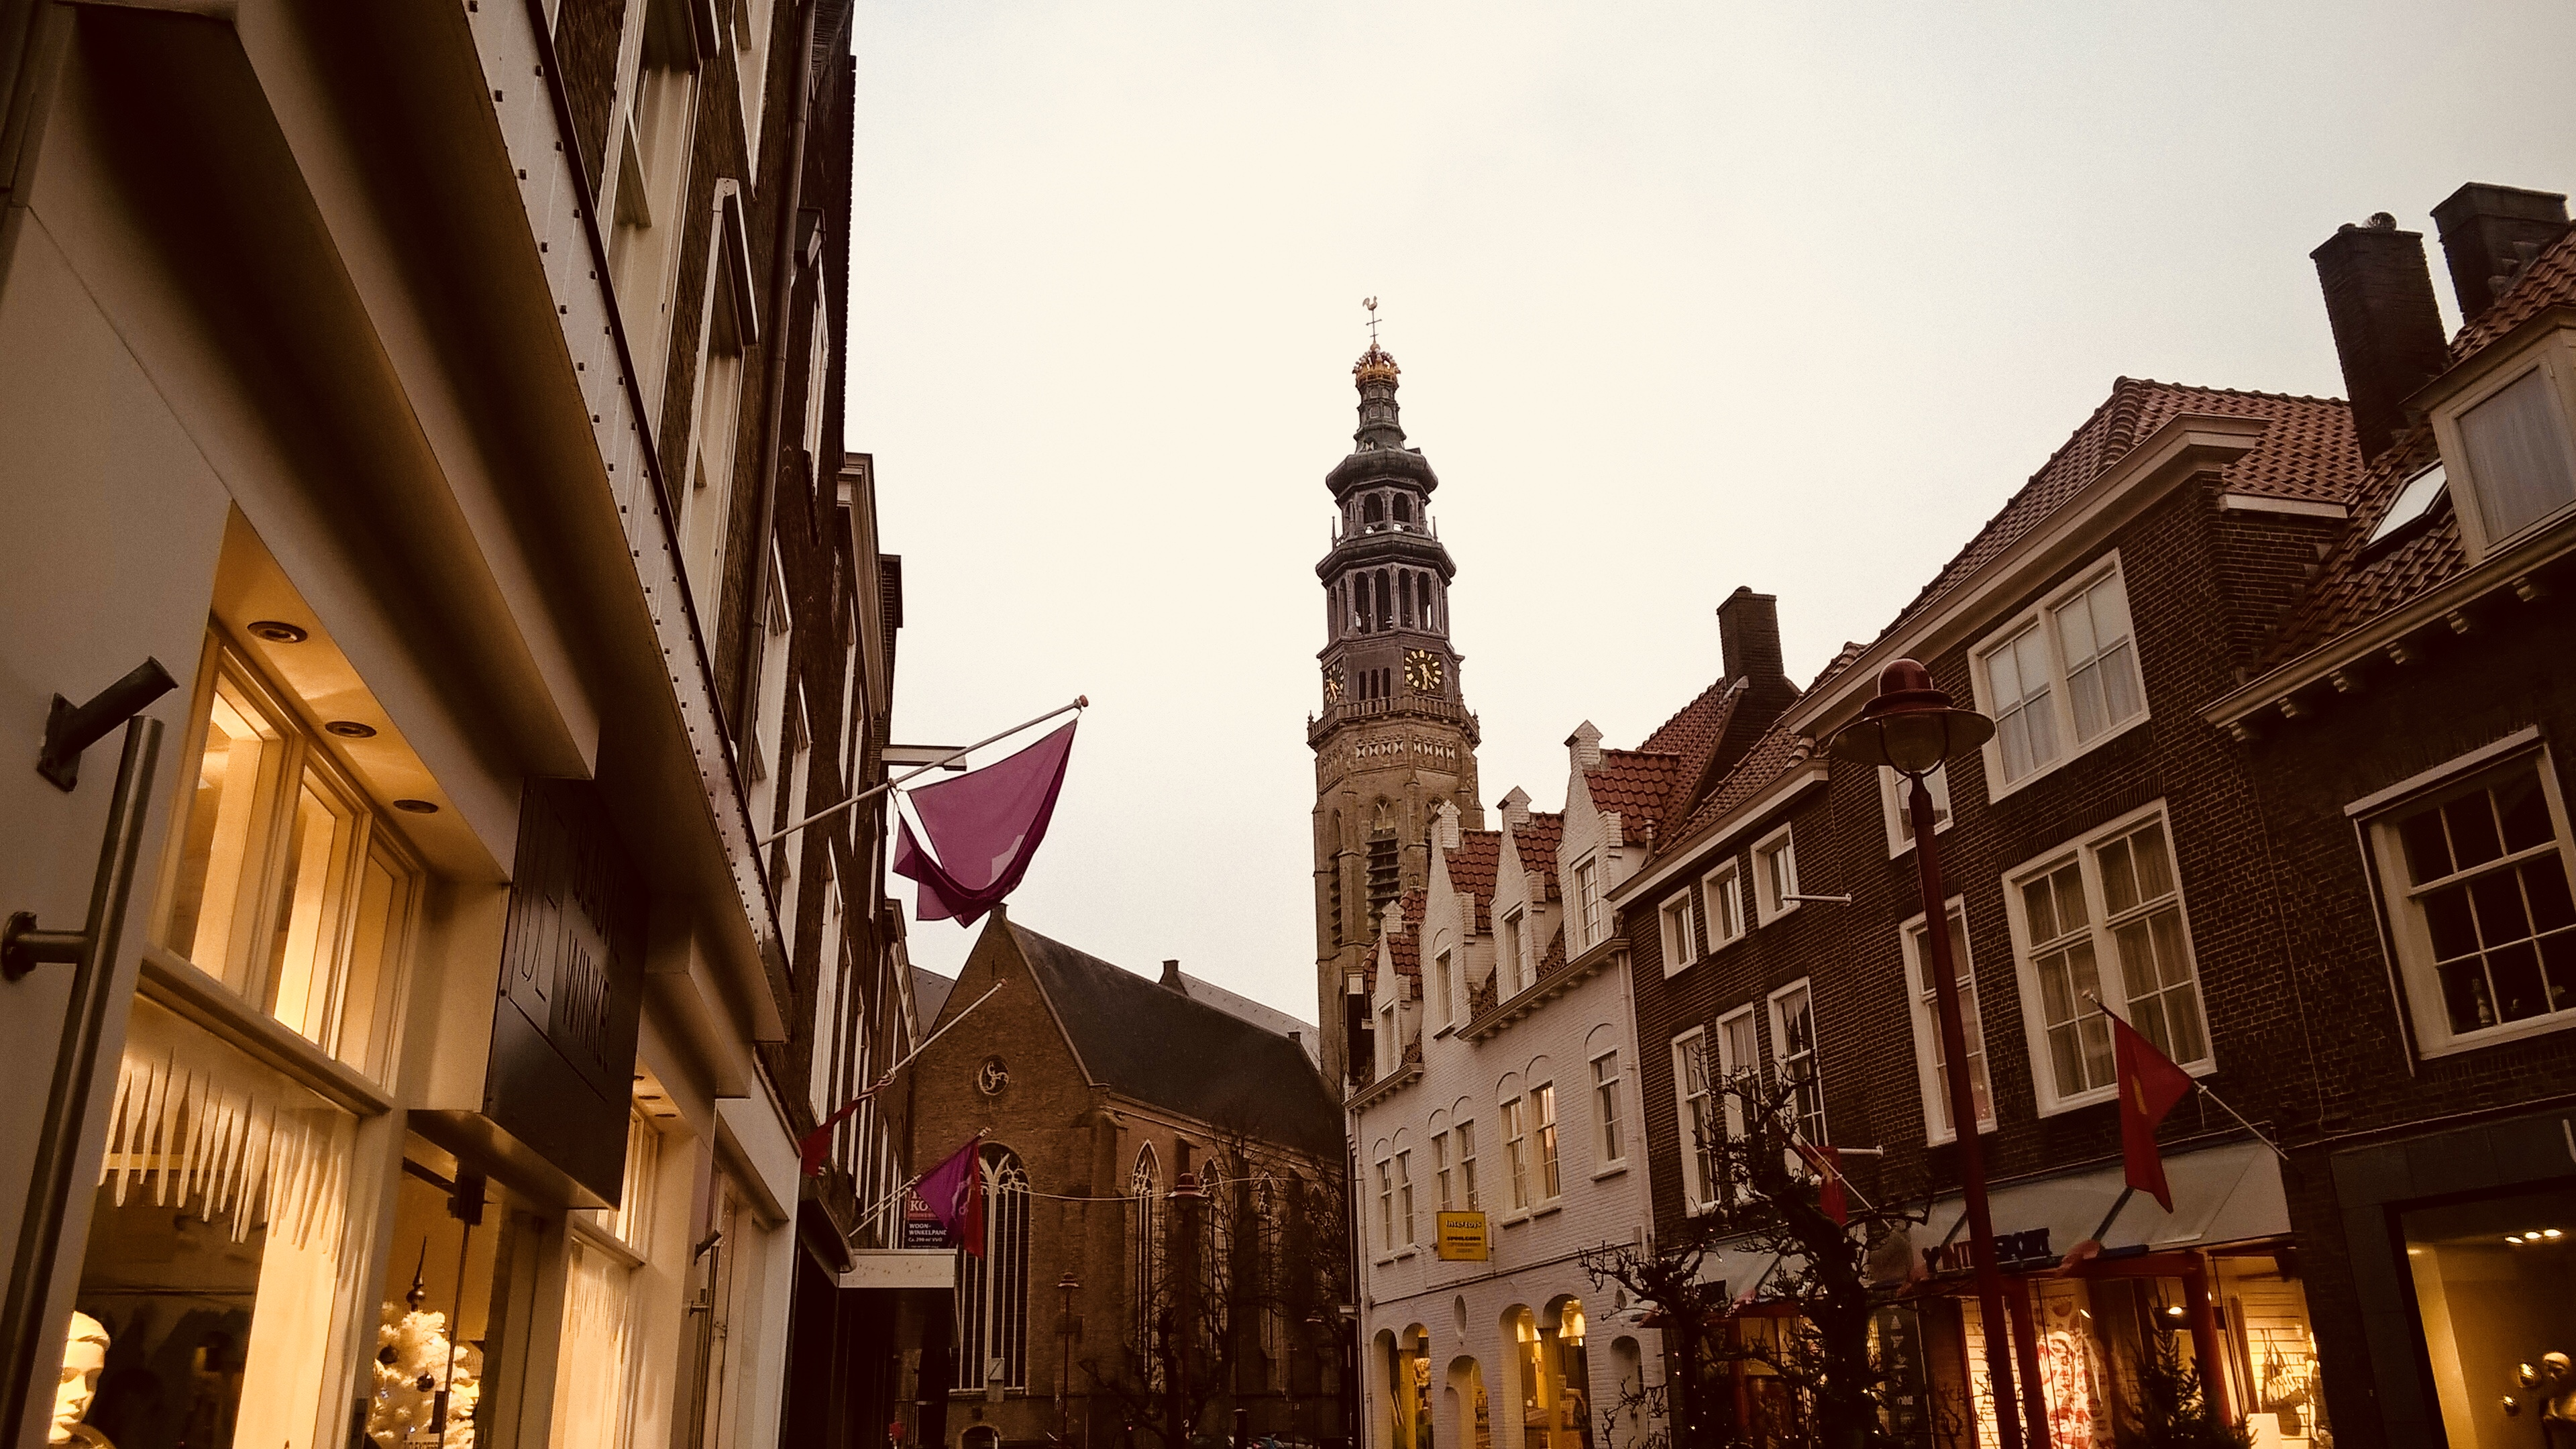 5 things to do in Zeeland, the Netherlands out of the season - Middleburg city centre